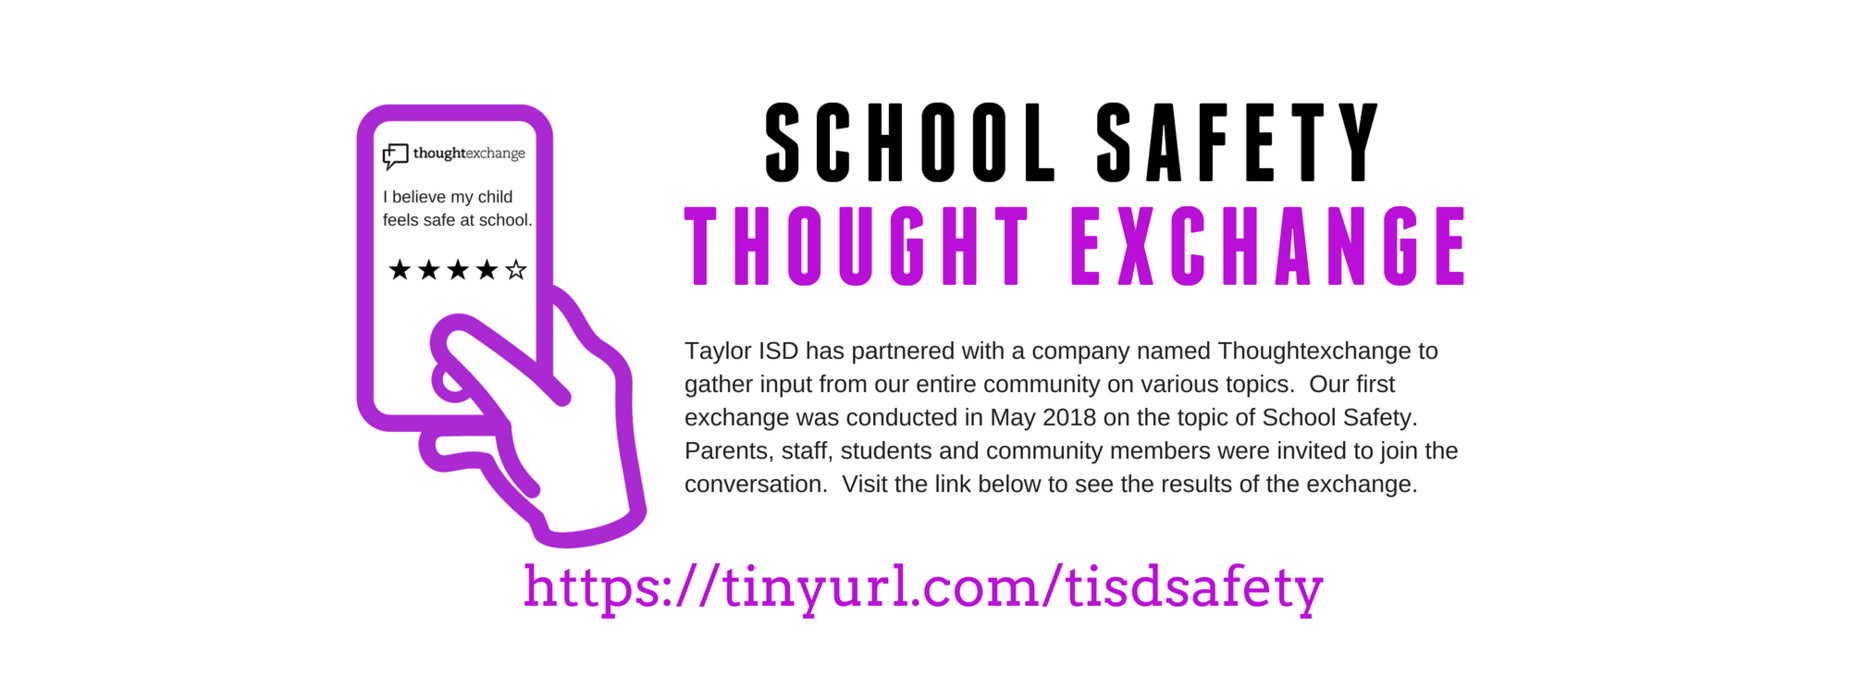 School Safety Thought Exchange